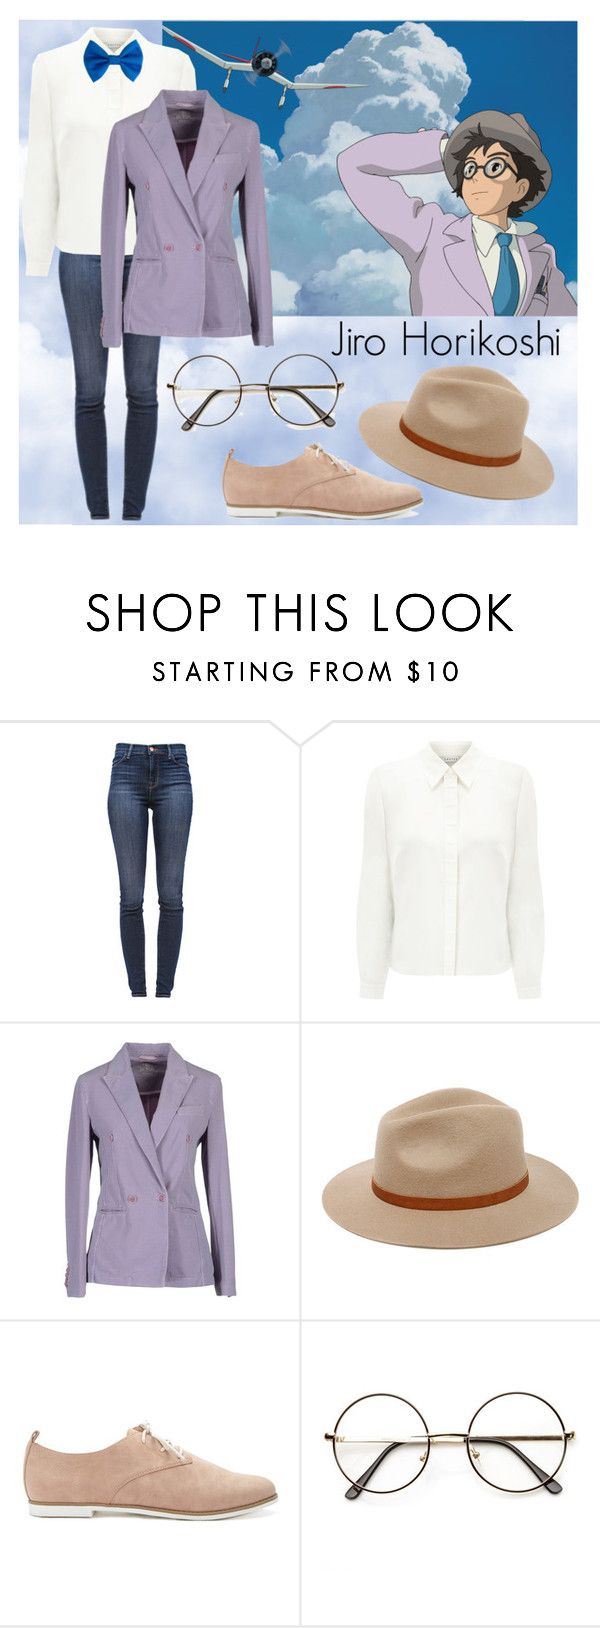 """Jiro Horikoshi - The Wind Rises"" by lottie554 ❤ liked on Polyvore featuring J Brand, Eastex, Be for Milano, Billabong, Forever 21, anime, StudioGhibli, characterset and TheWindRises"